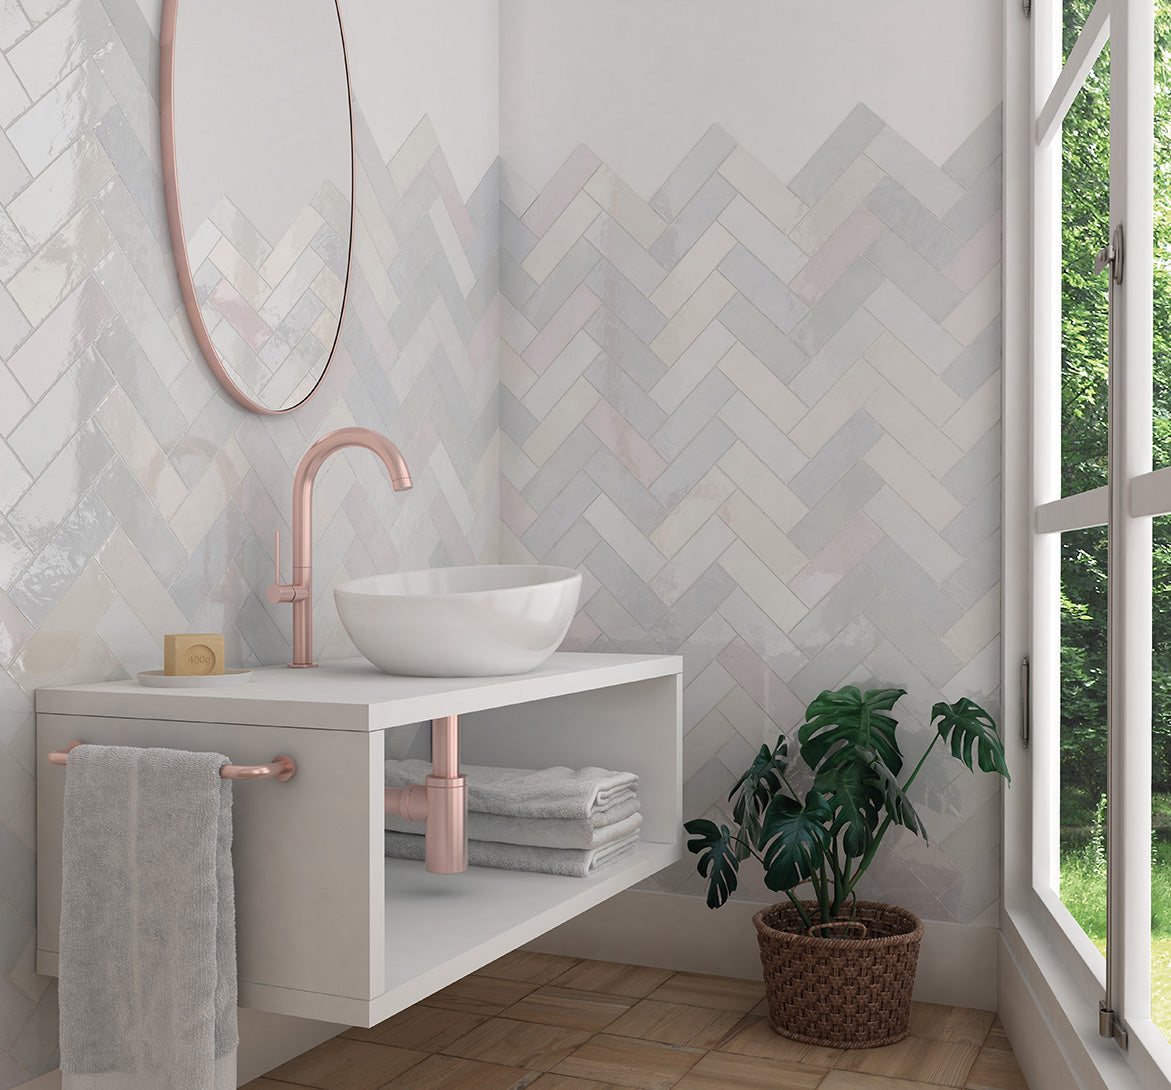 A mix of our La Riviera ceramic tiles gives this modern pastel bathroom with a herringbone subway tile vanity backsplash a subtle rainbow effect - the copper accents make it even more creative!